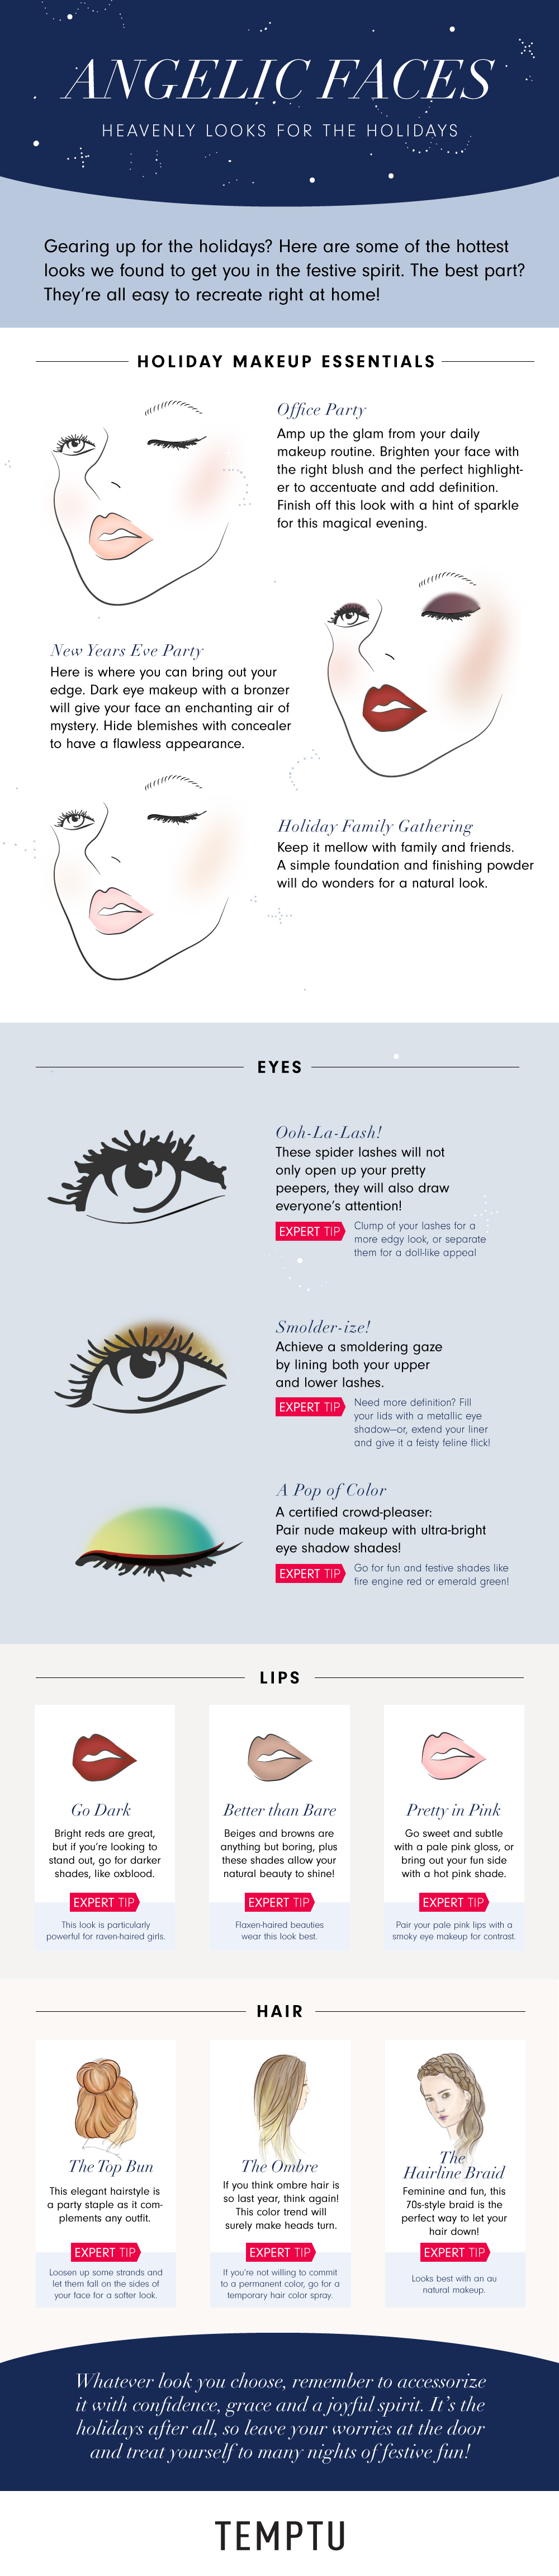 Holiday Beauty Tips for All Styles  An Infographic